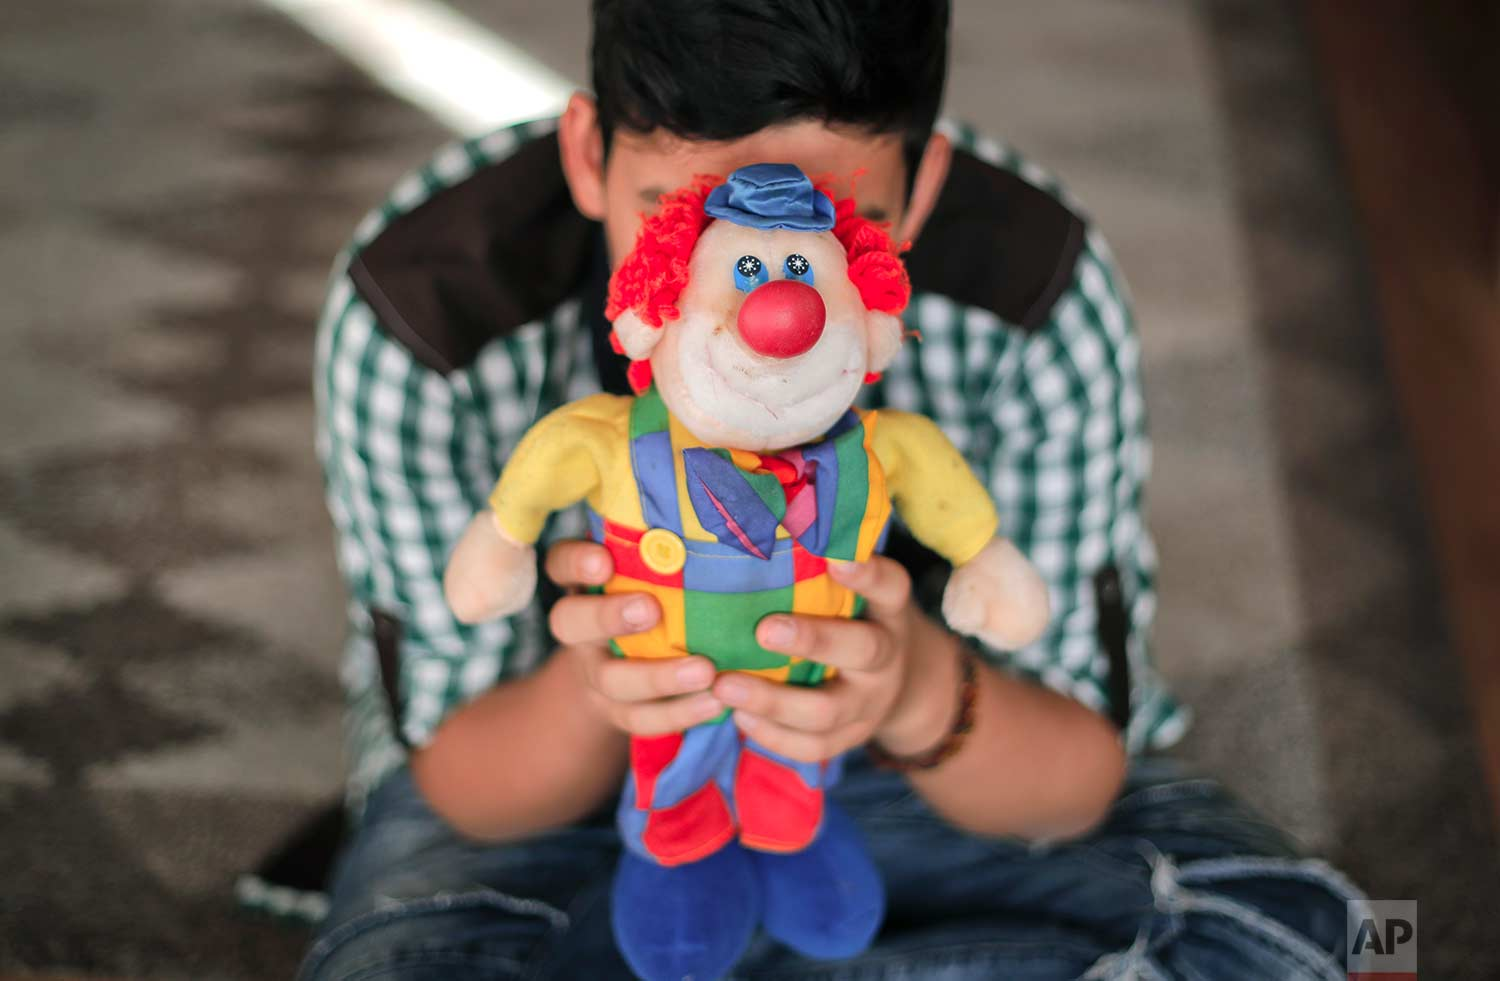 A boy living in a family-style home for abandoned children poses for a photo covering his face with a clown doll in Bucharest, Romania, on Wednesday, Nov. 1, 2017. (AP Photo/Vadim Ghirda)